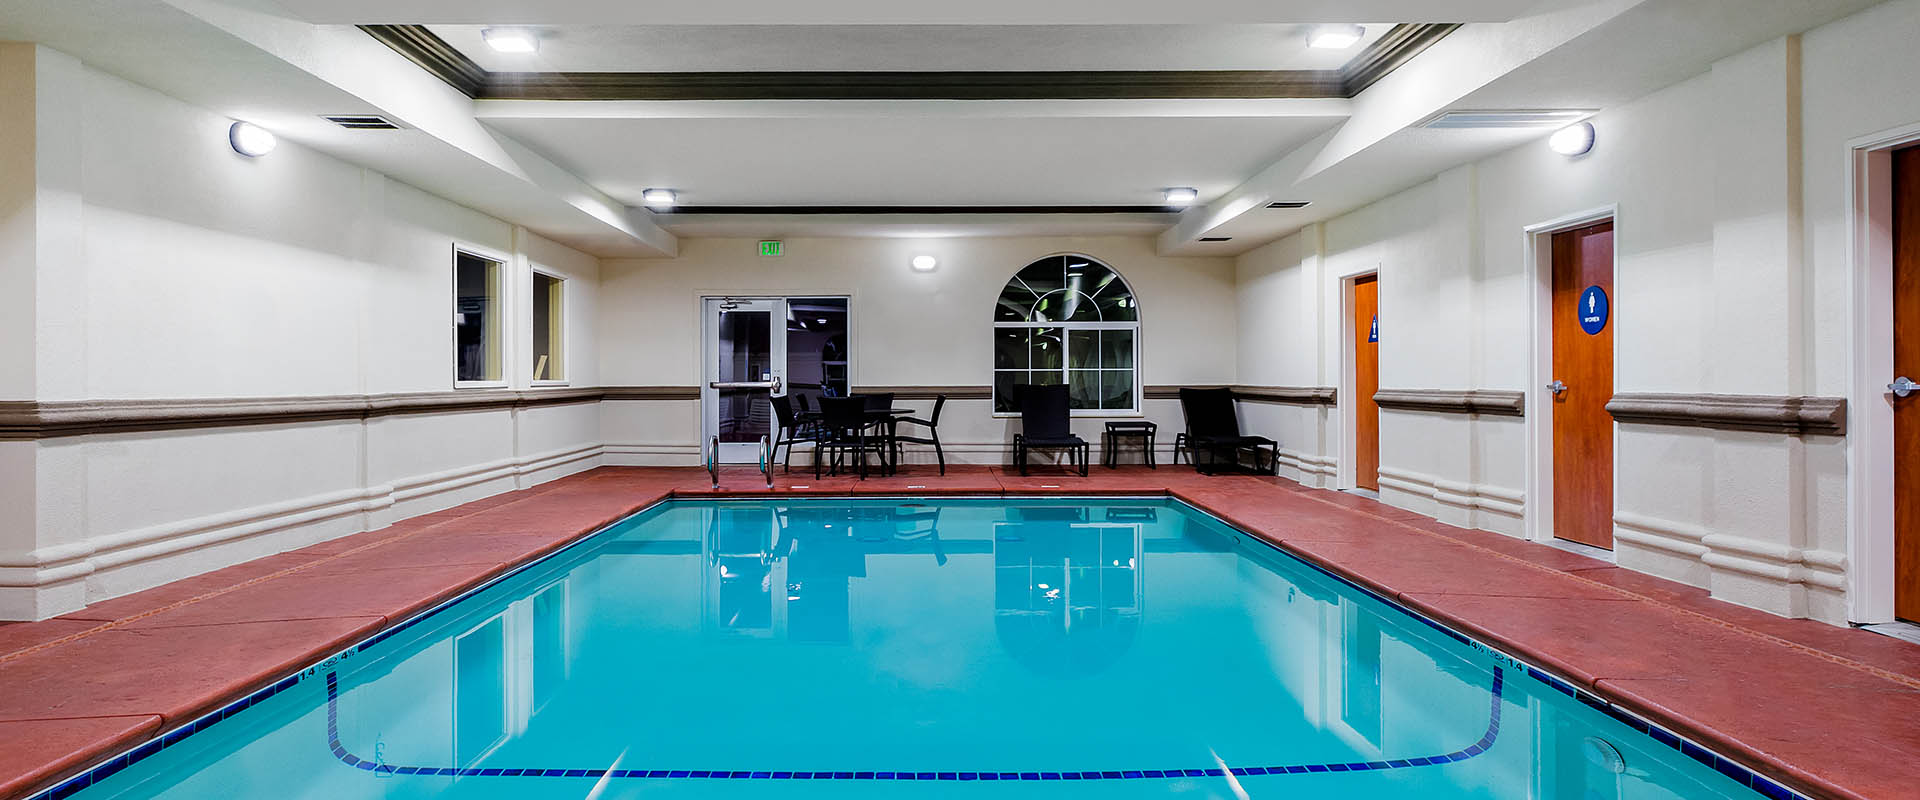 No matter the weather outside, our hotel guests enjoy our indoor pool & whirlpool spa.